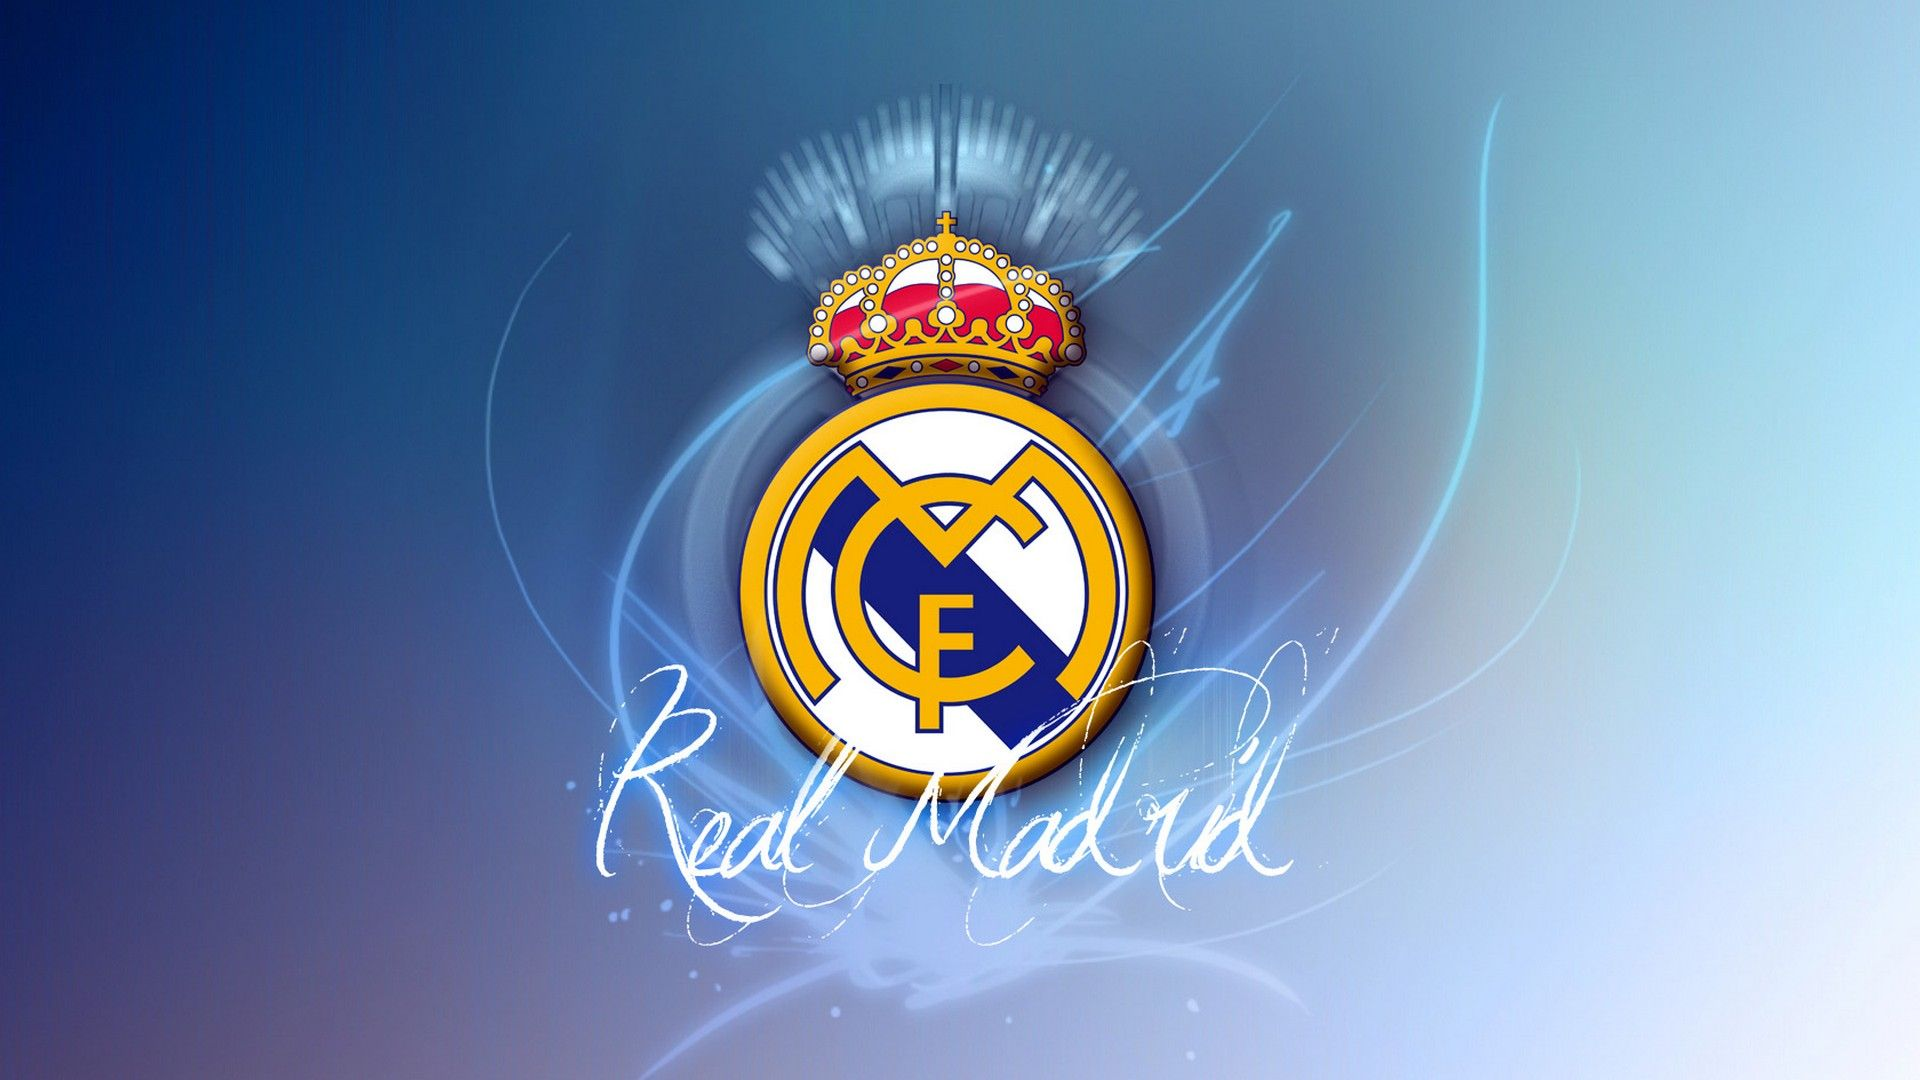 Hd Real Madrid Backgrounds Best Wallpaper Hd Real Madrid Wallpapers Real Madrid Logo Real Madrid Logo Wallpapers